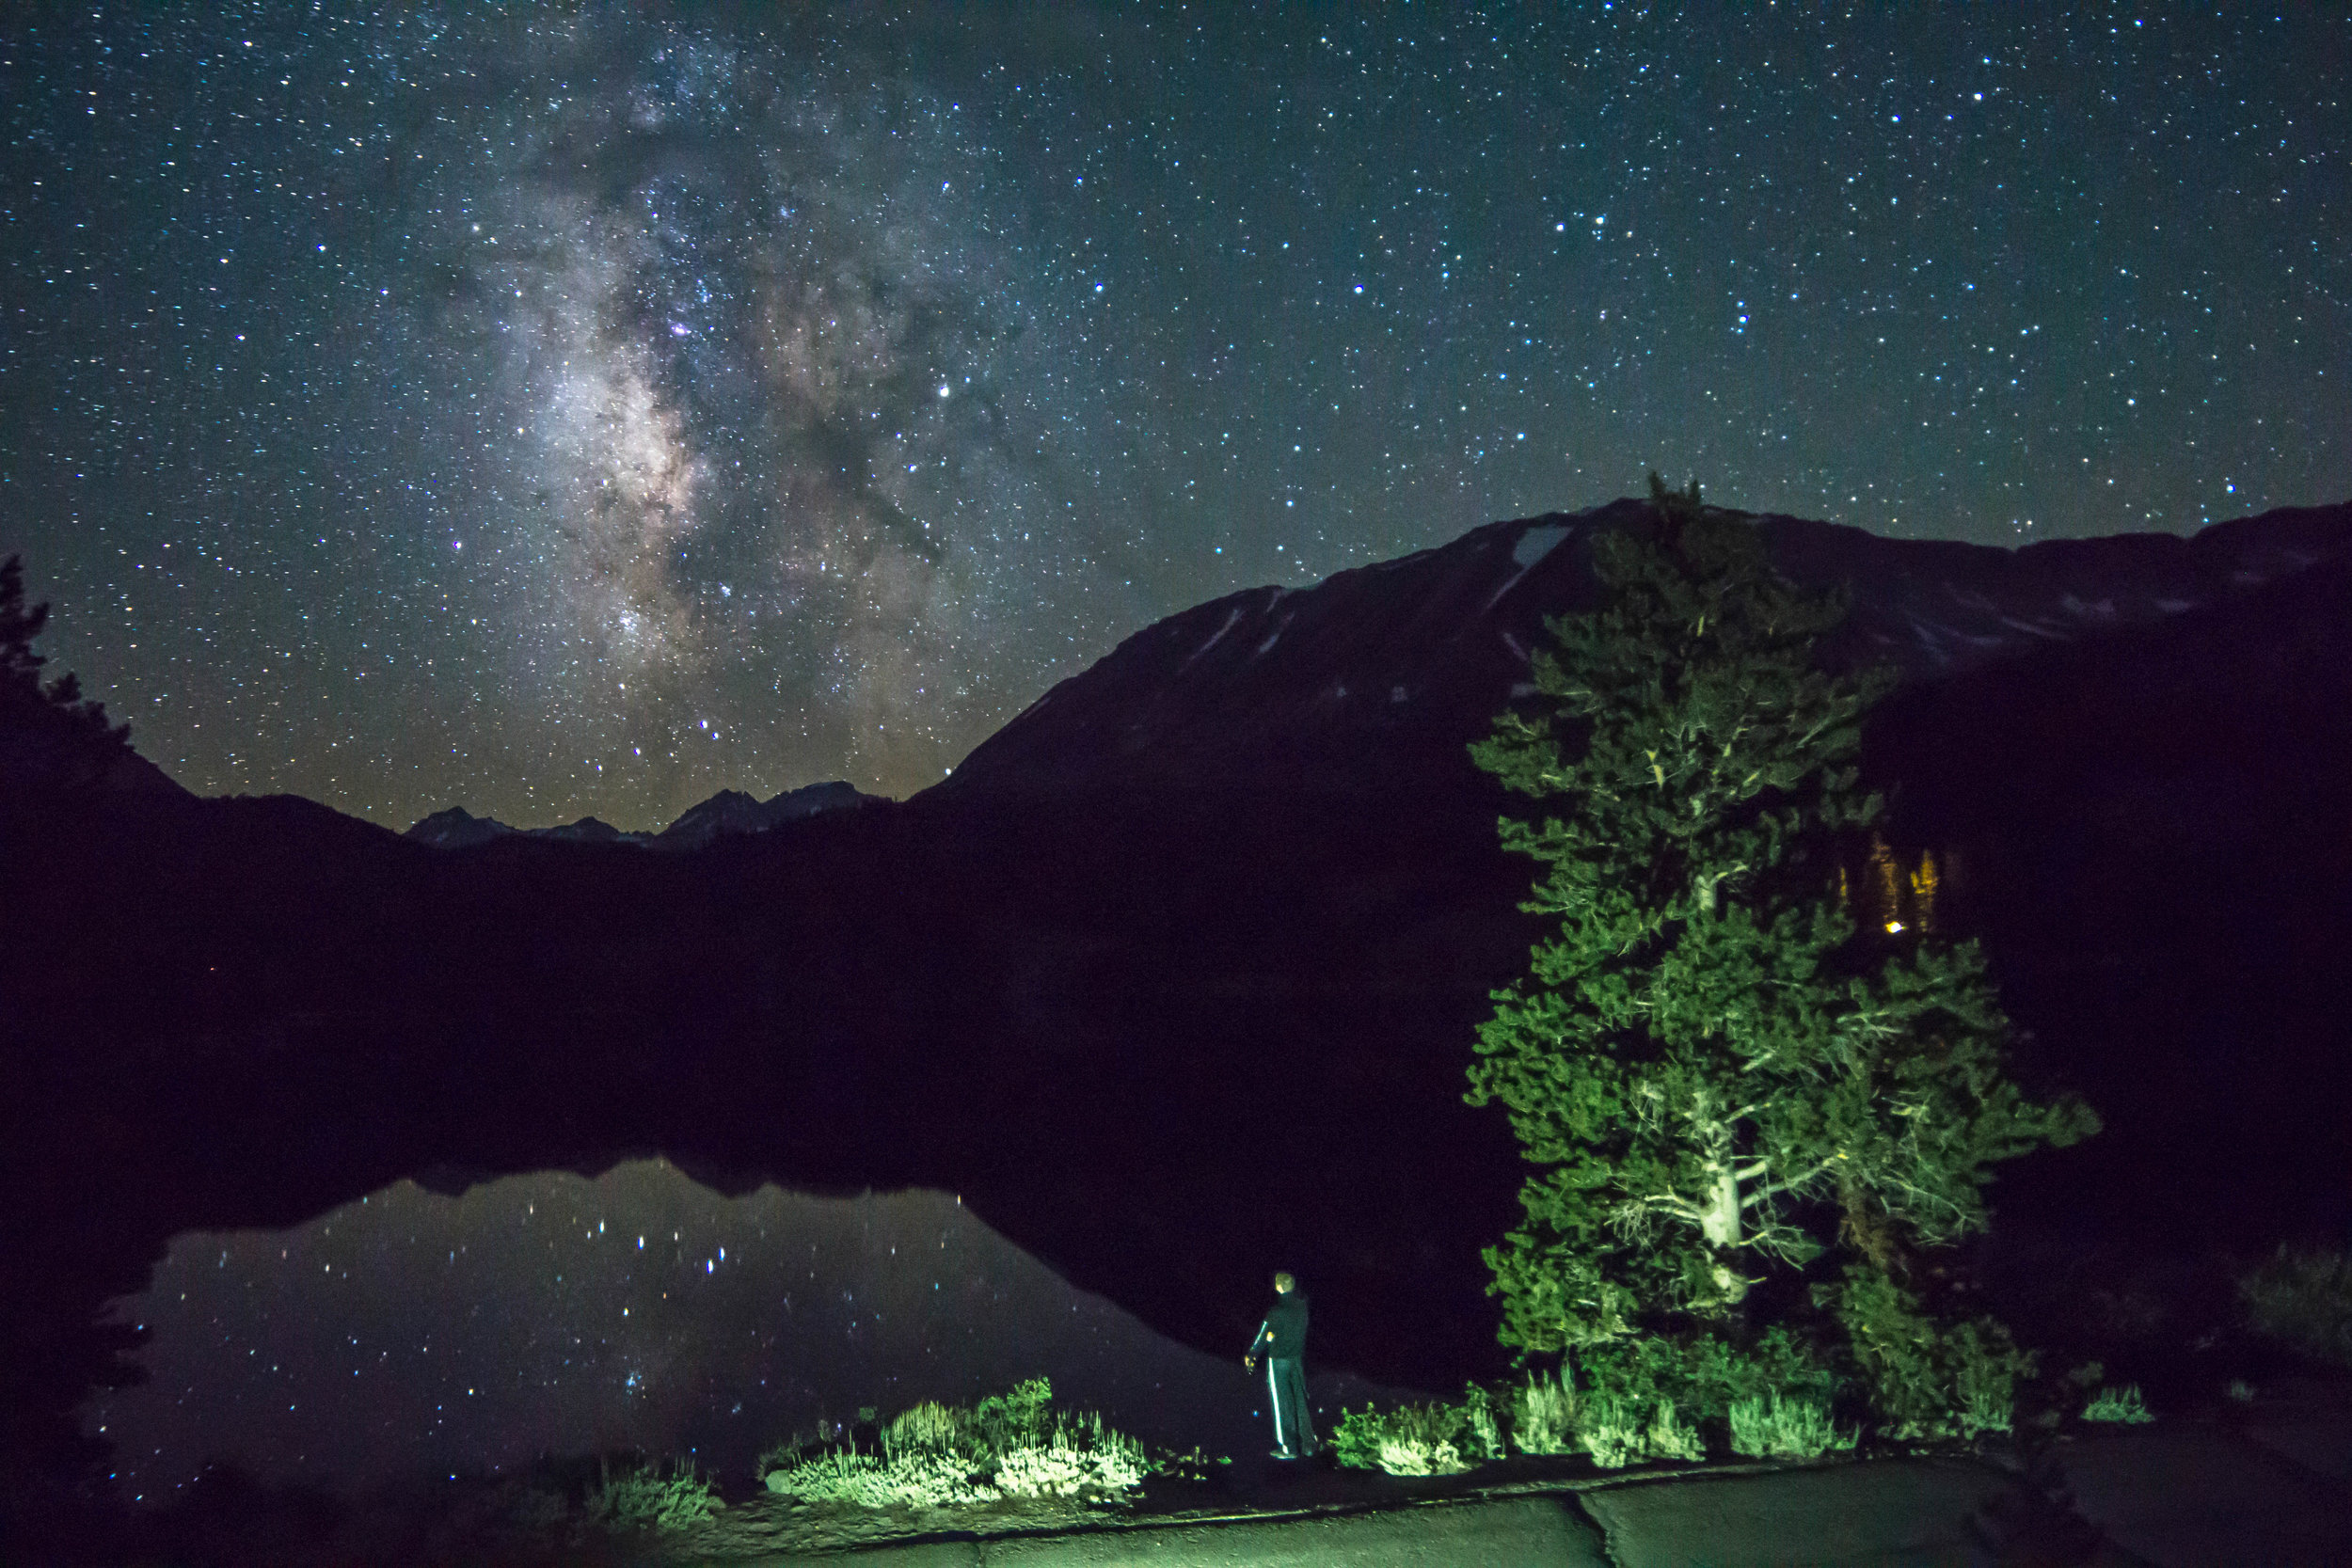 A 6 hour drive brings us beneath a starry sky cut by the galactic center of the Milky Way in the Eastern Sierras just outside of Bishop.